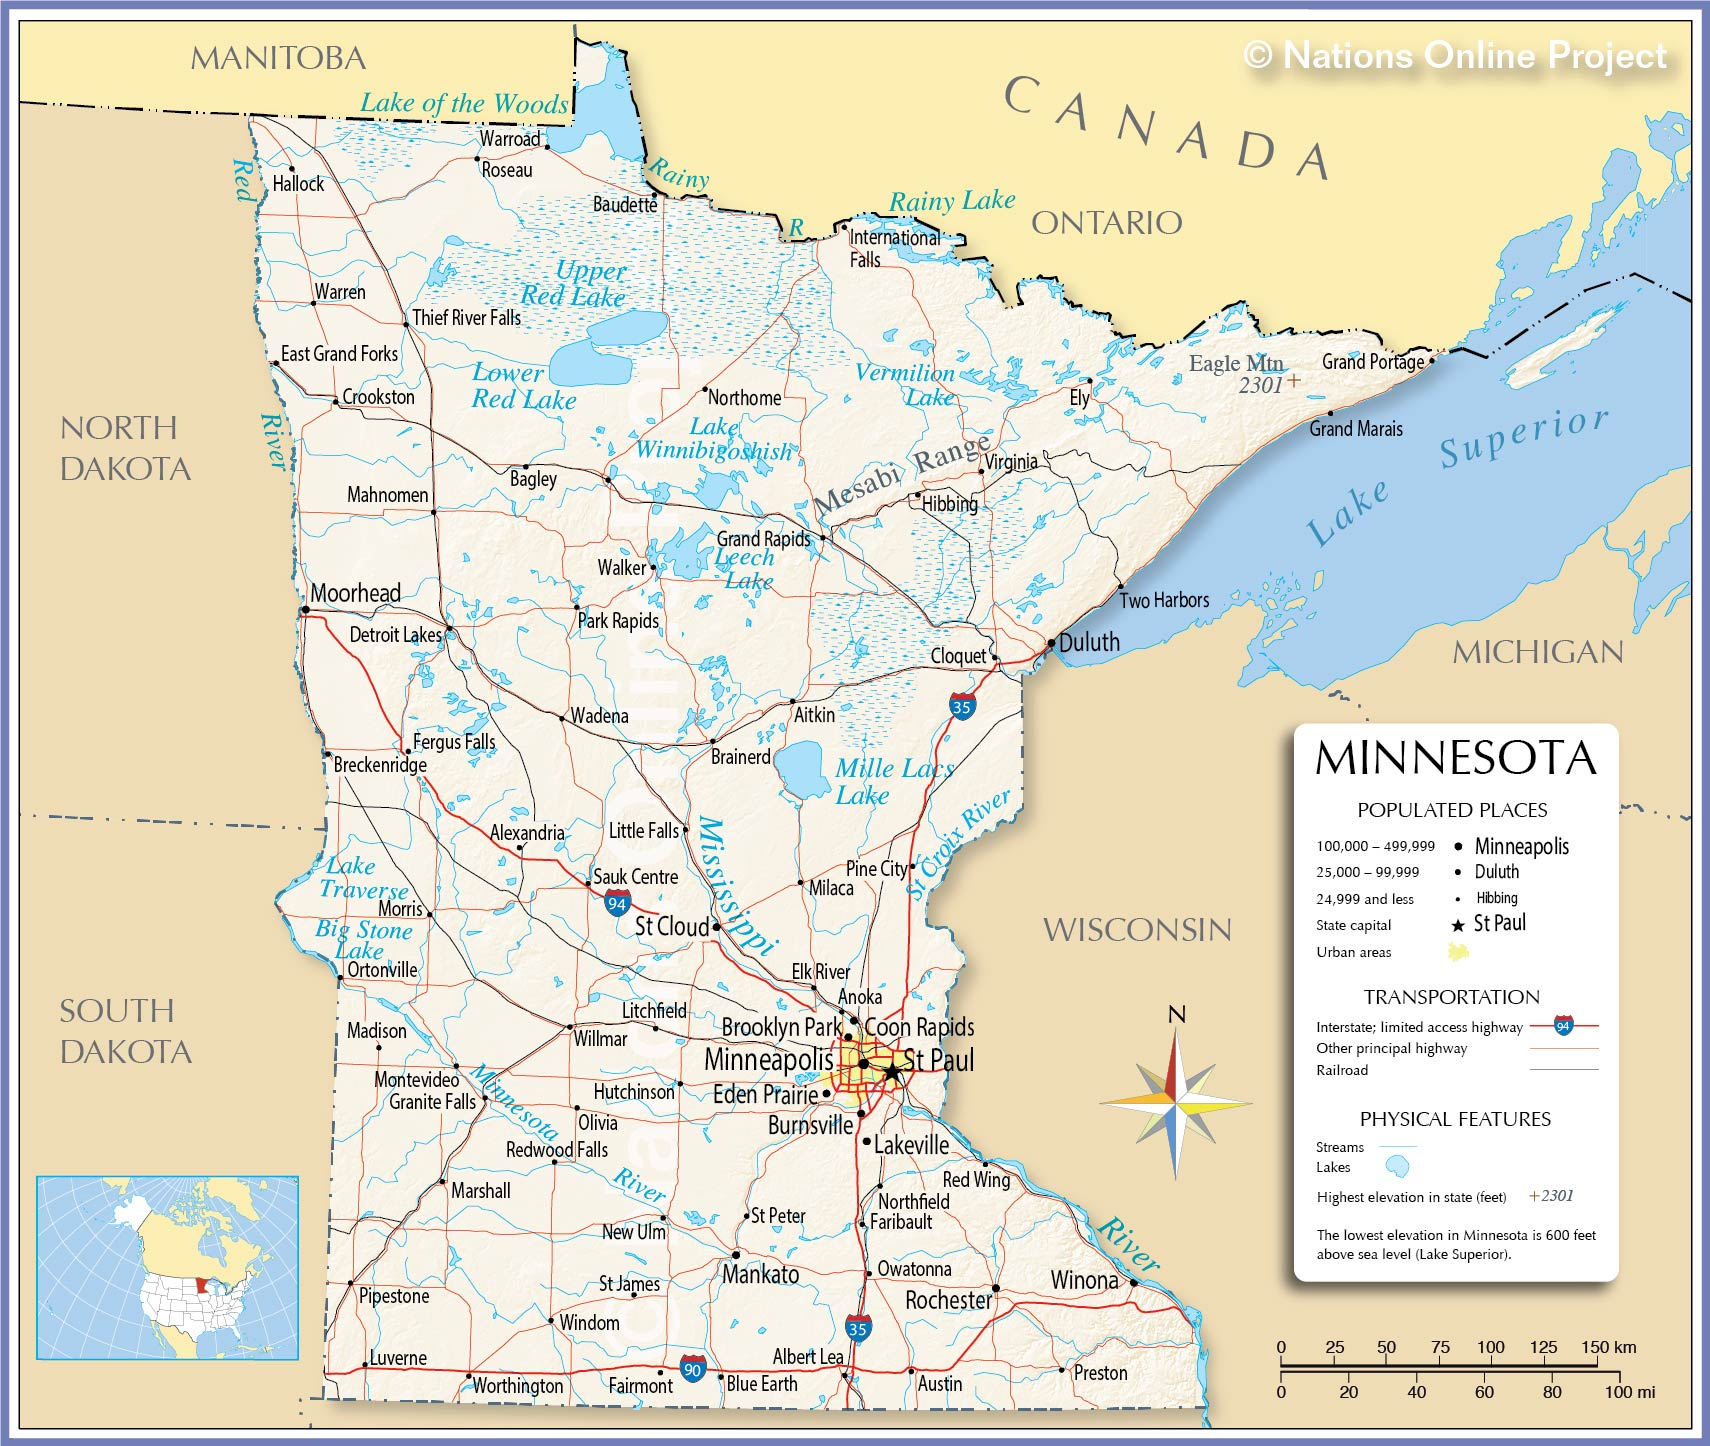 Reference Map Of Minnesota USA Nations Online Project - County maps of minnesota